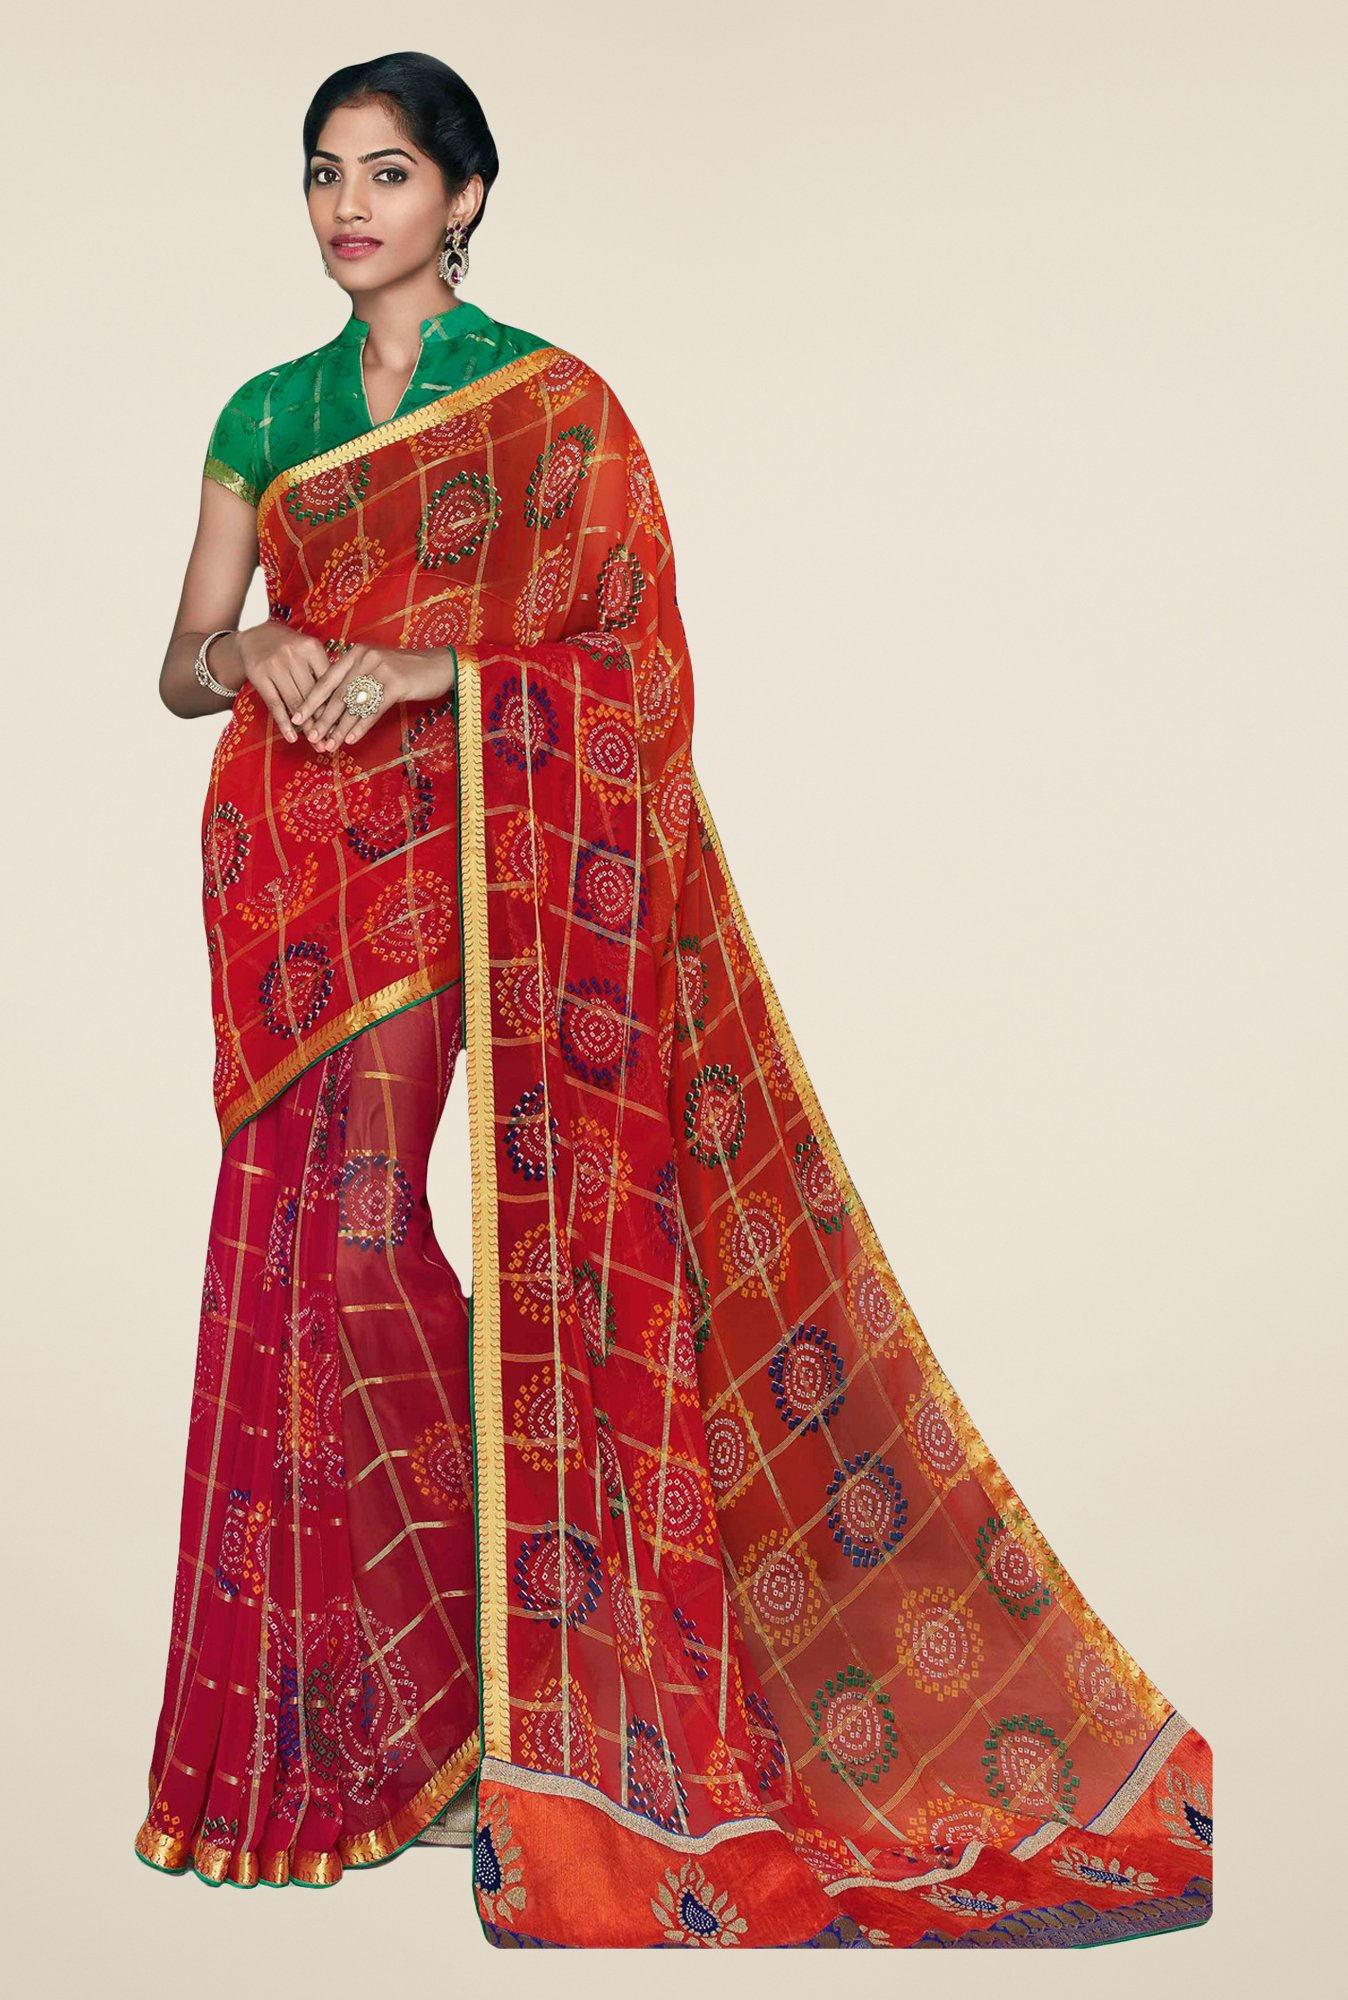 Salwar Studio Red & Green Georgette Bandhej Saree